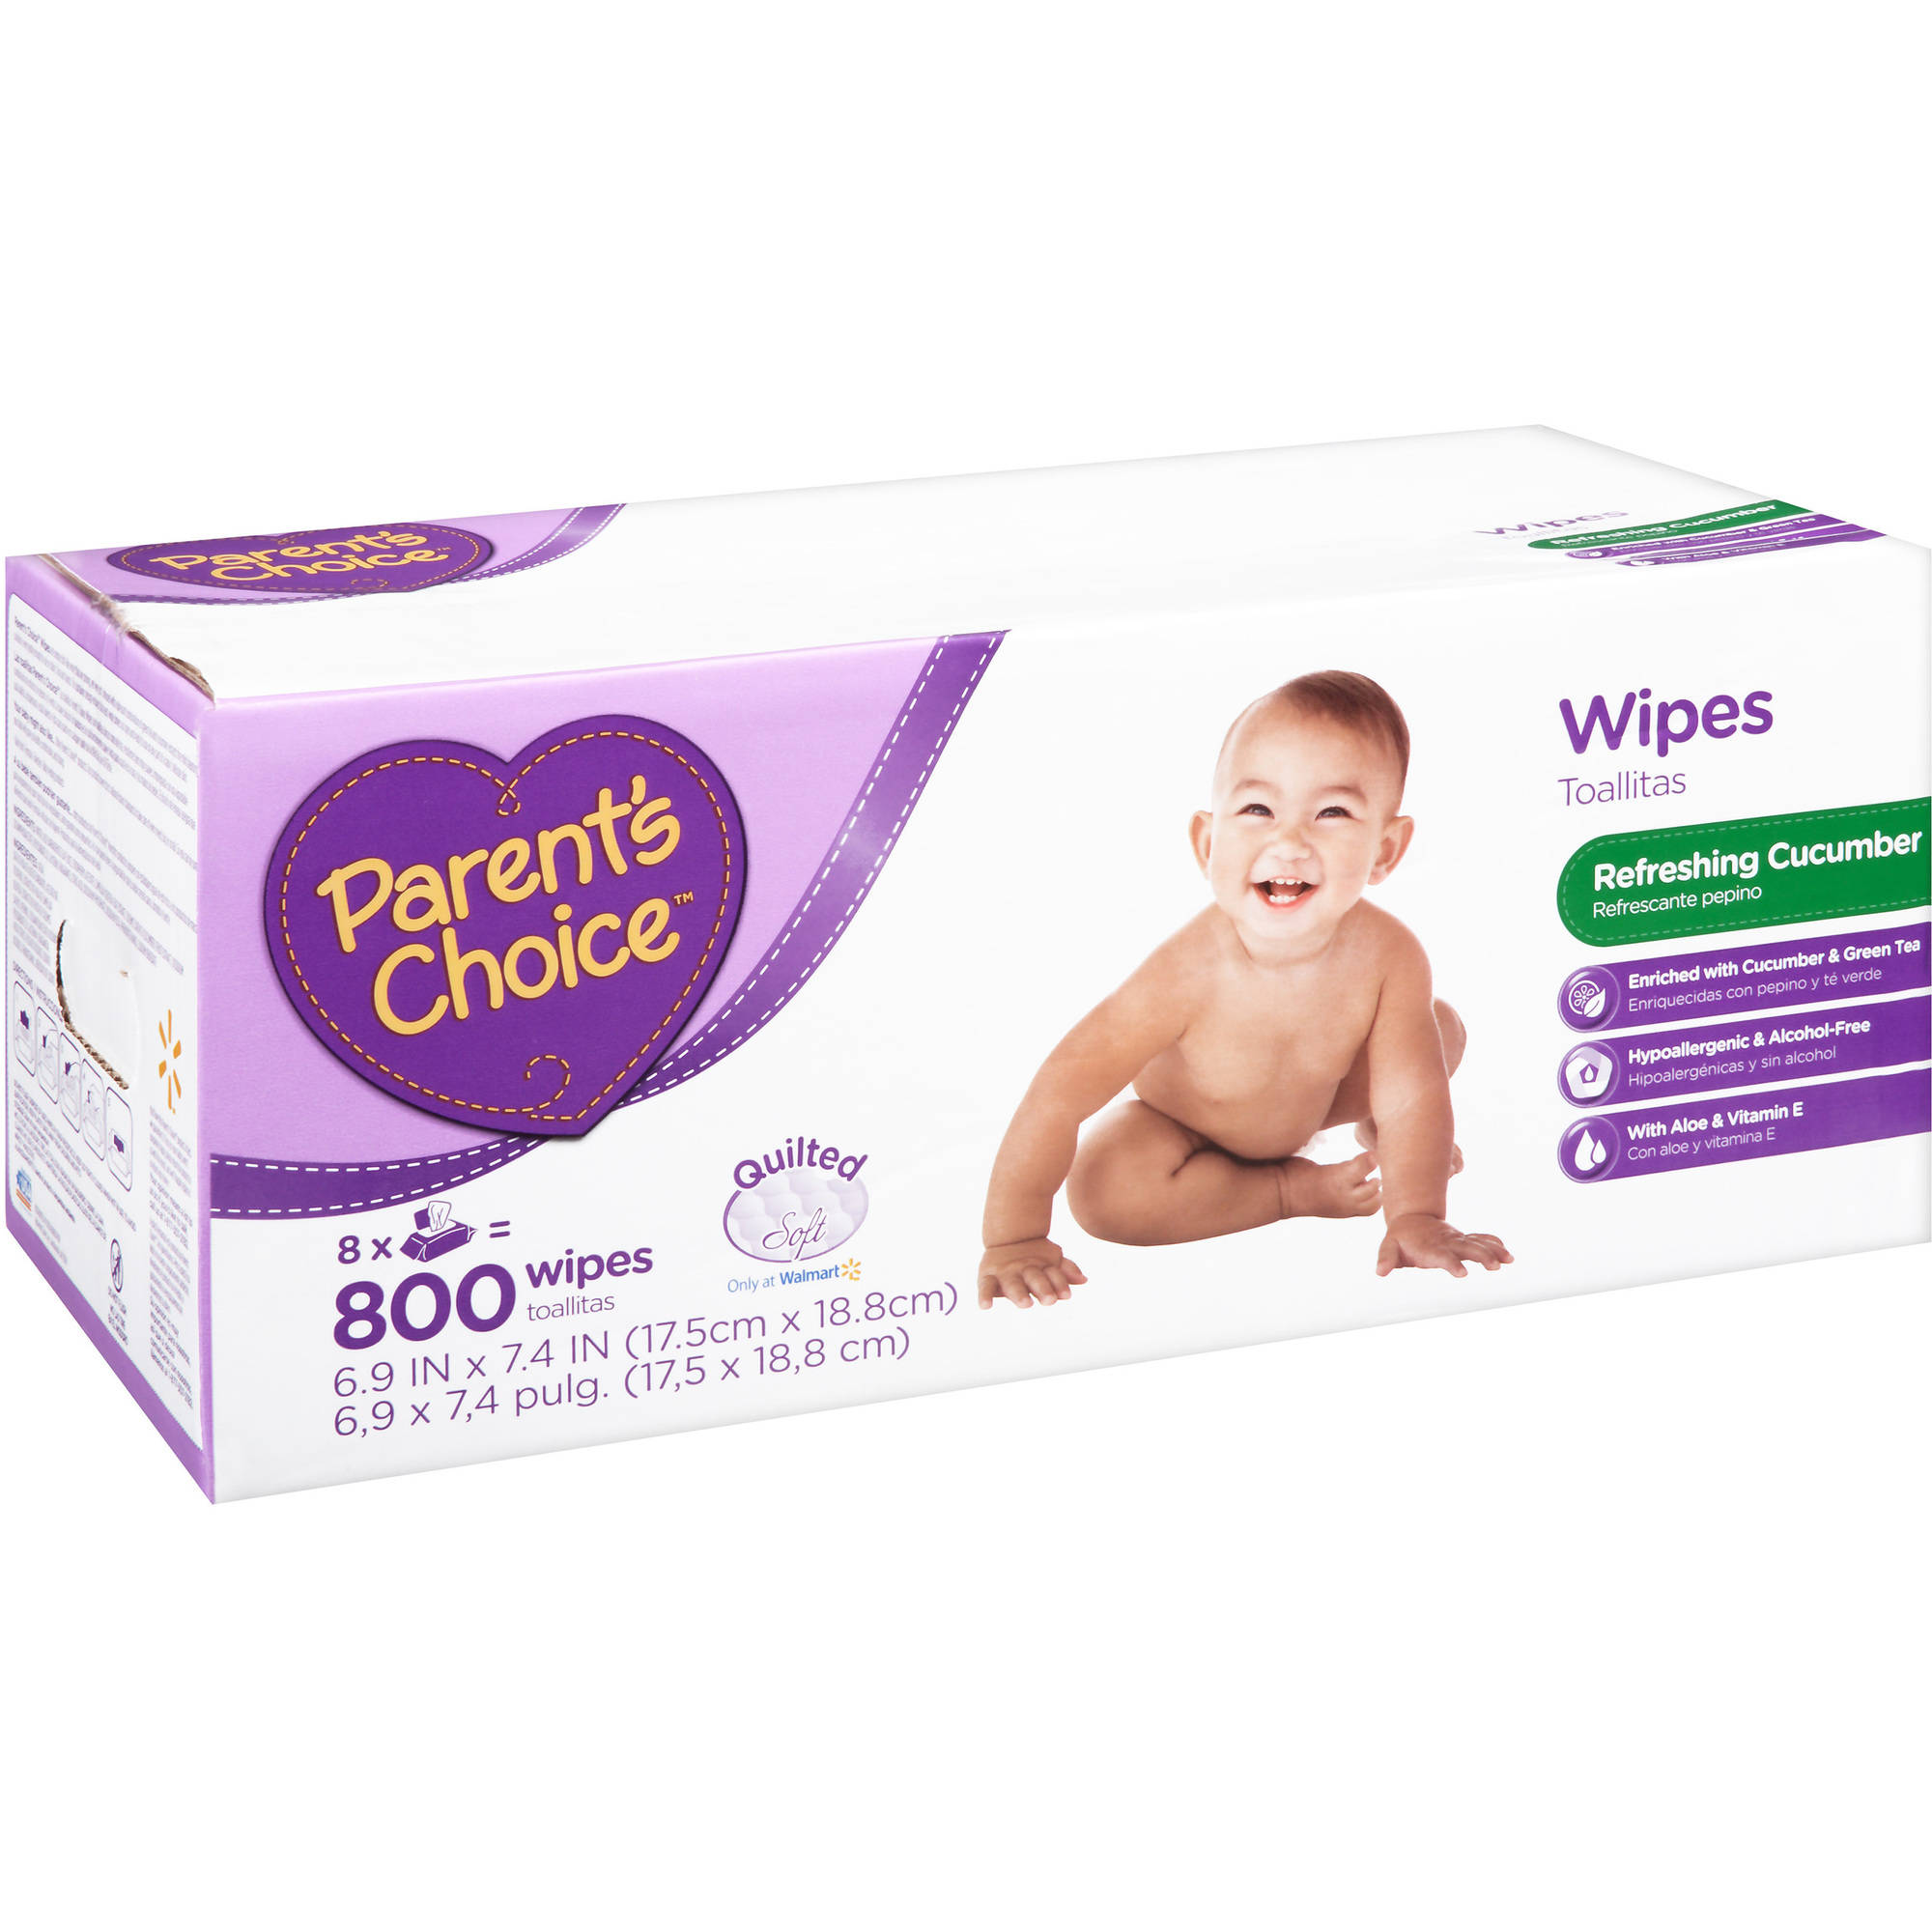 Parent's Choice Refreshing Cucumber Baby Wipes, 800 sheets